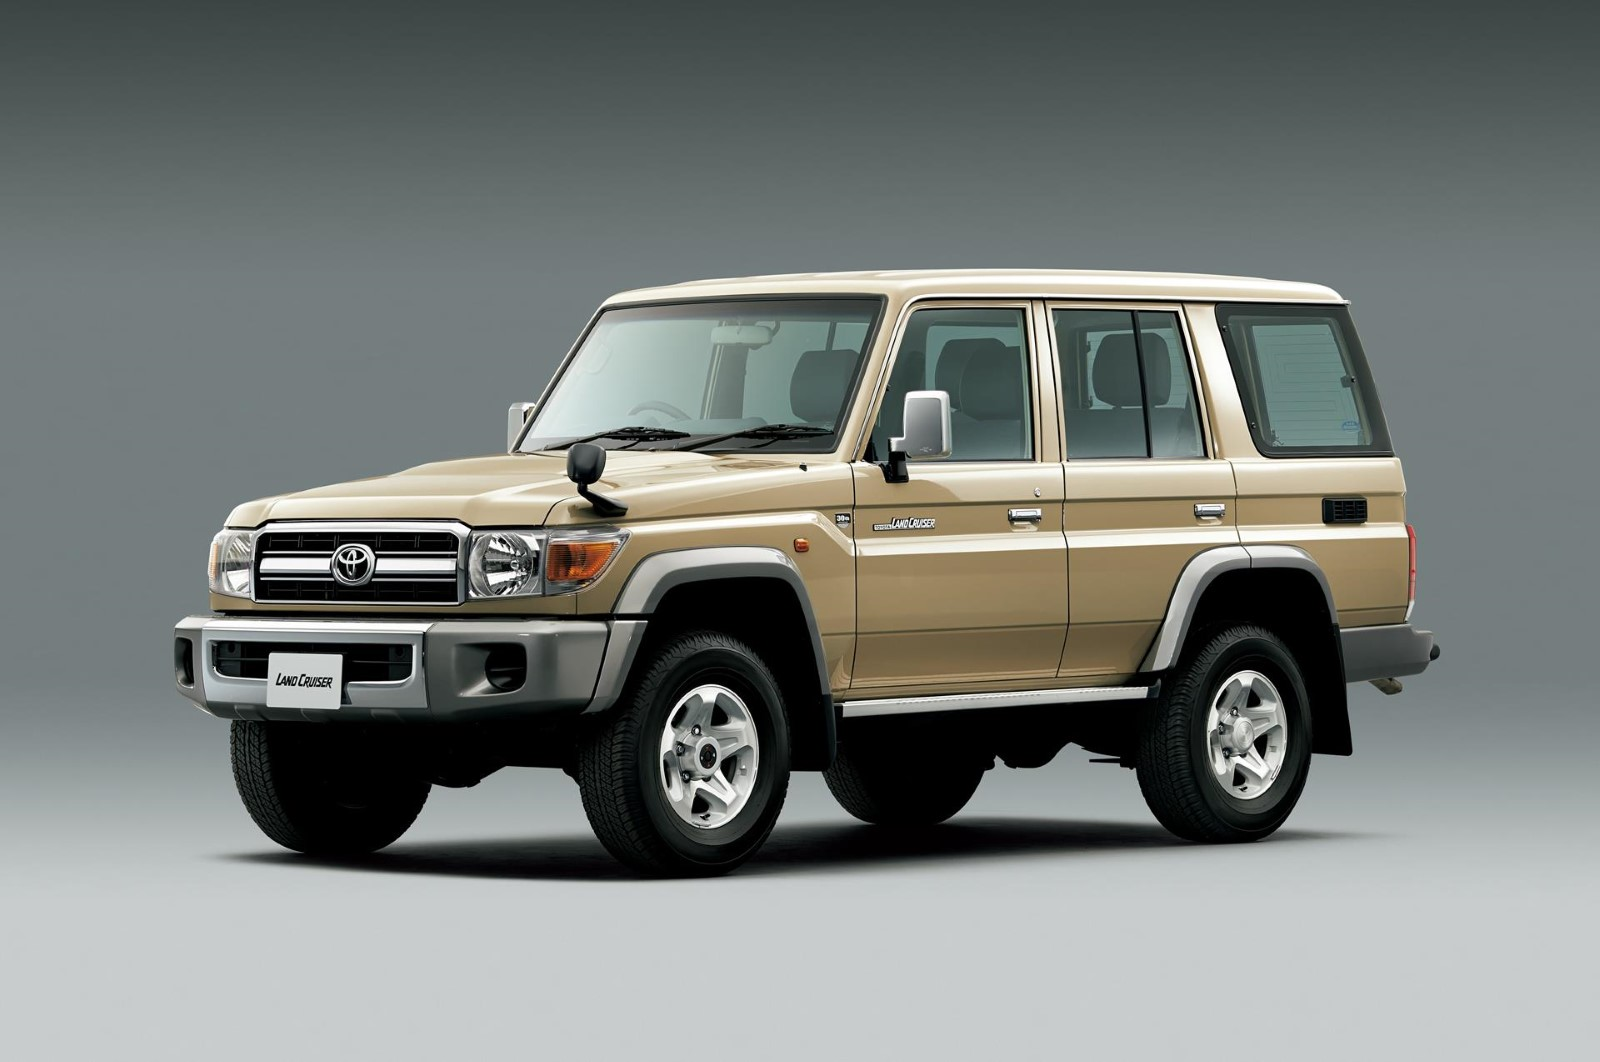 New Jeep Truck >> Toyota surprises with Land Cruiser 70 re-release